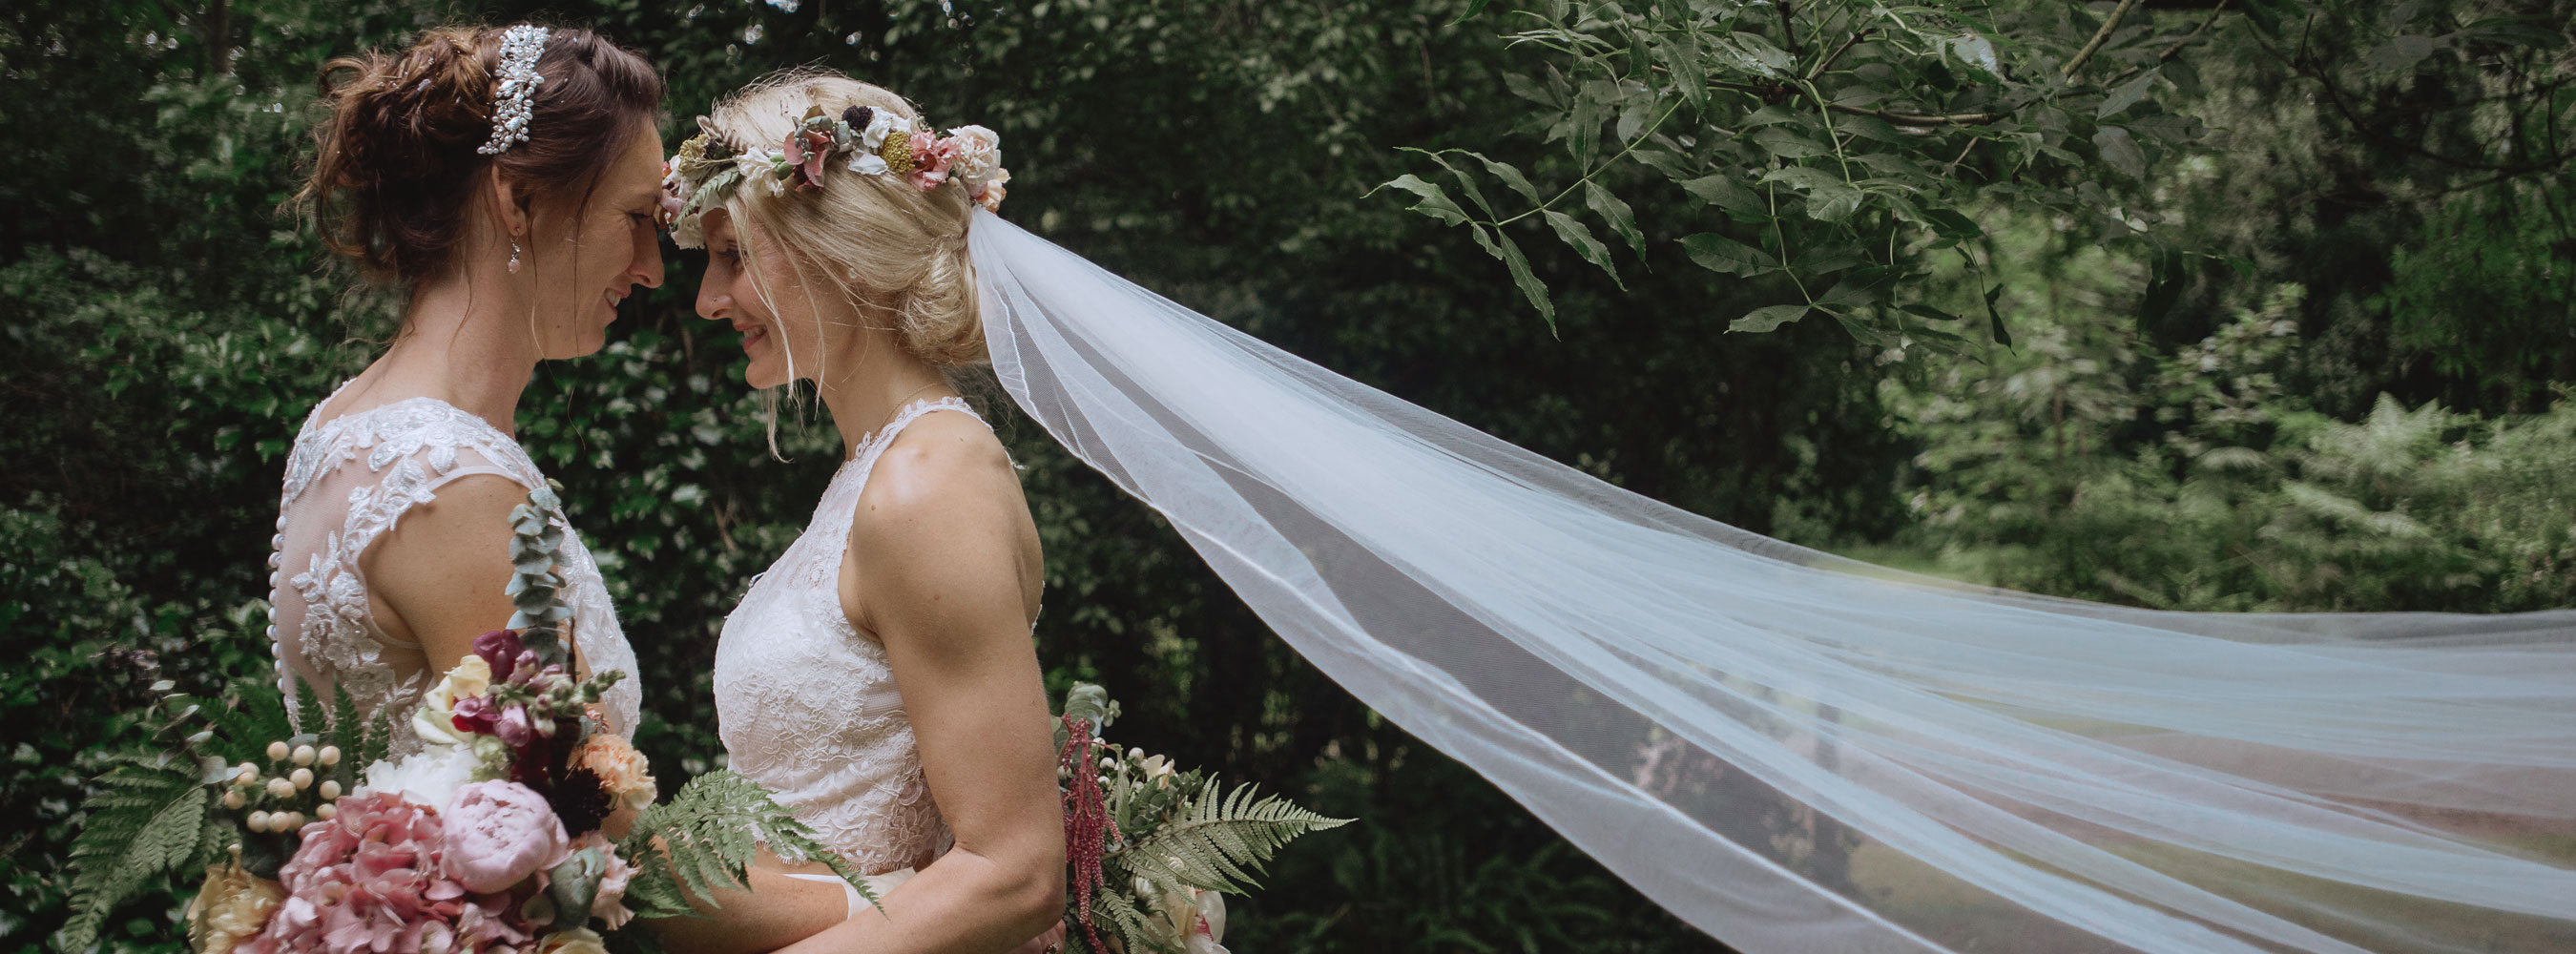 Gay Woodland Wedding